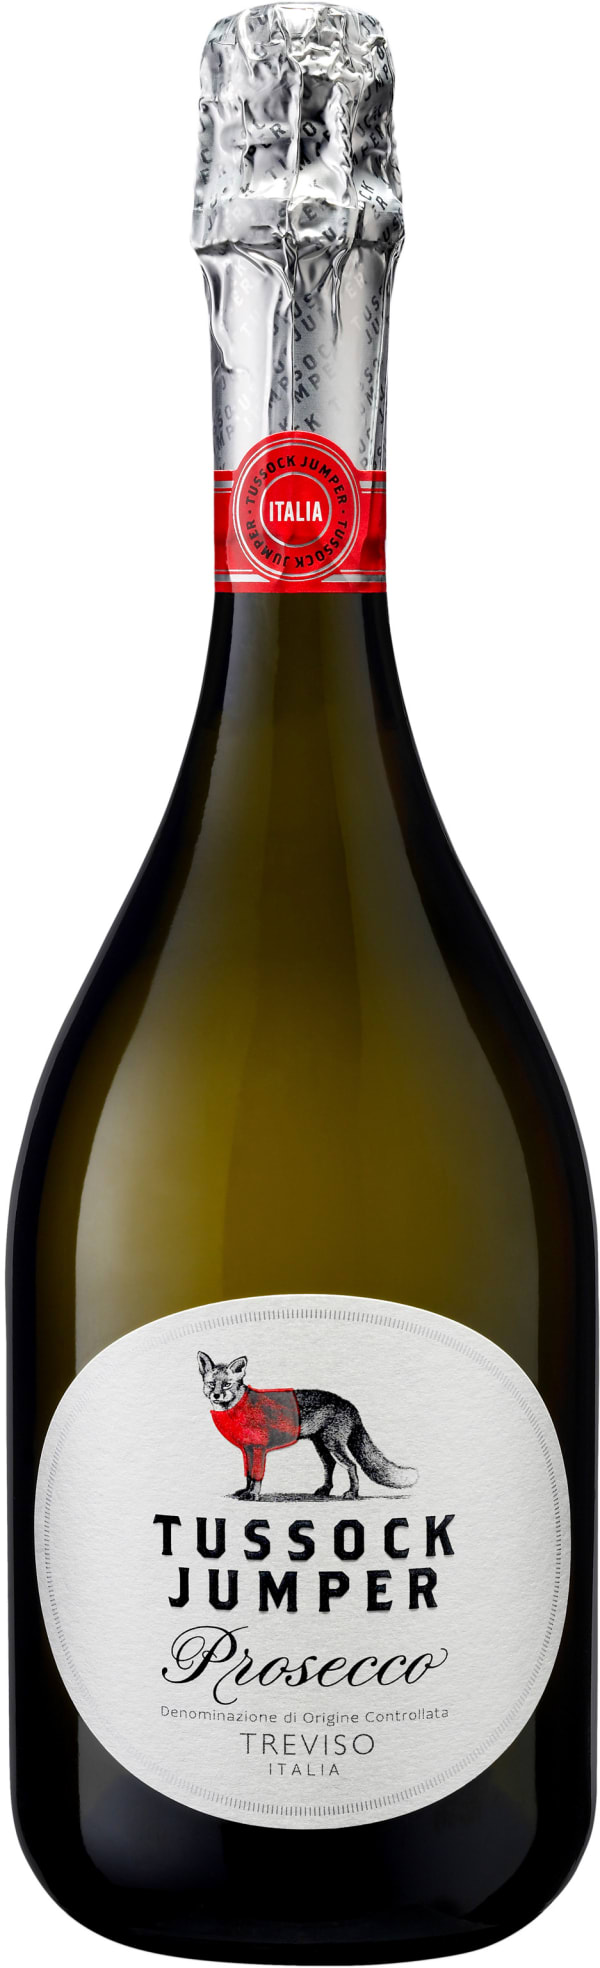 Tussock Jumper Prosecco Extra Dry